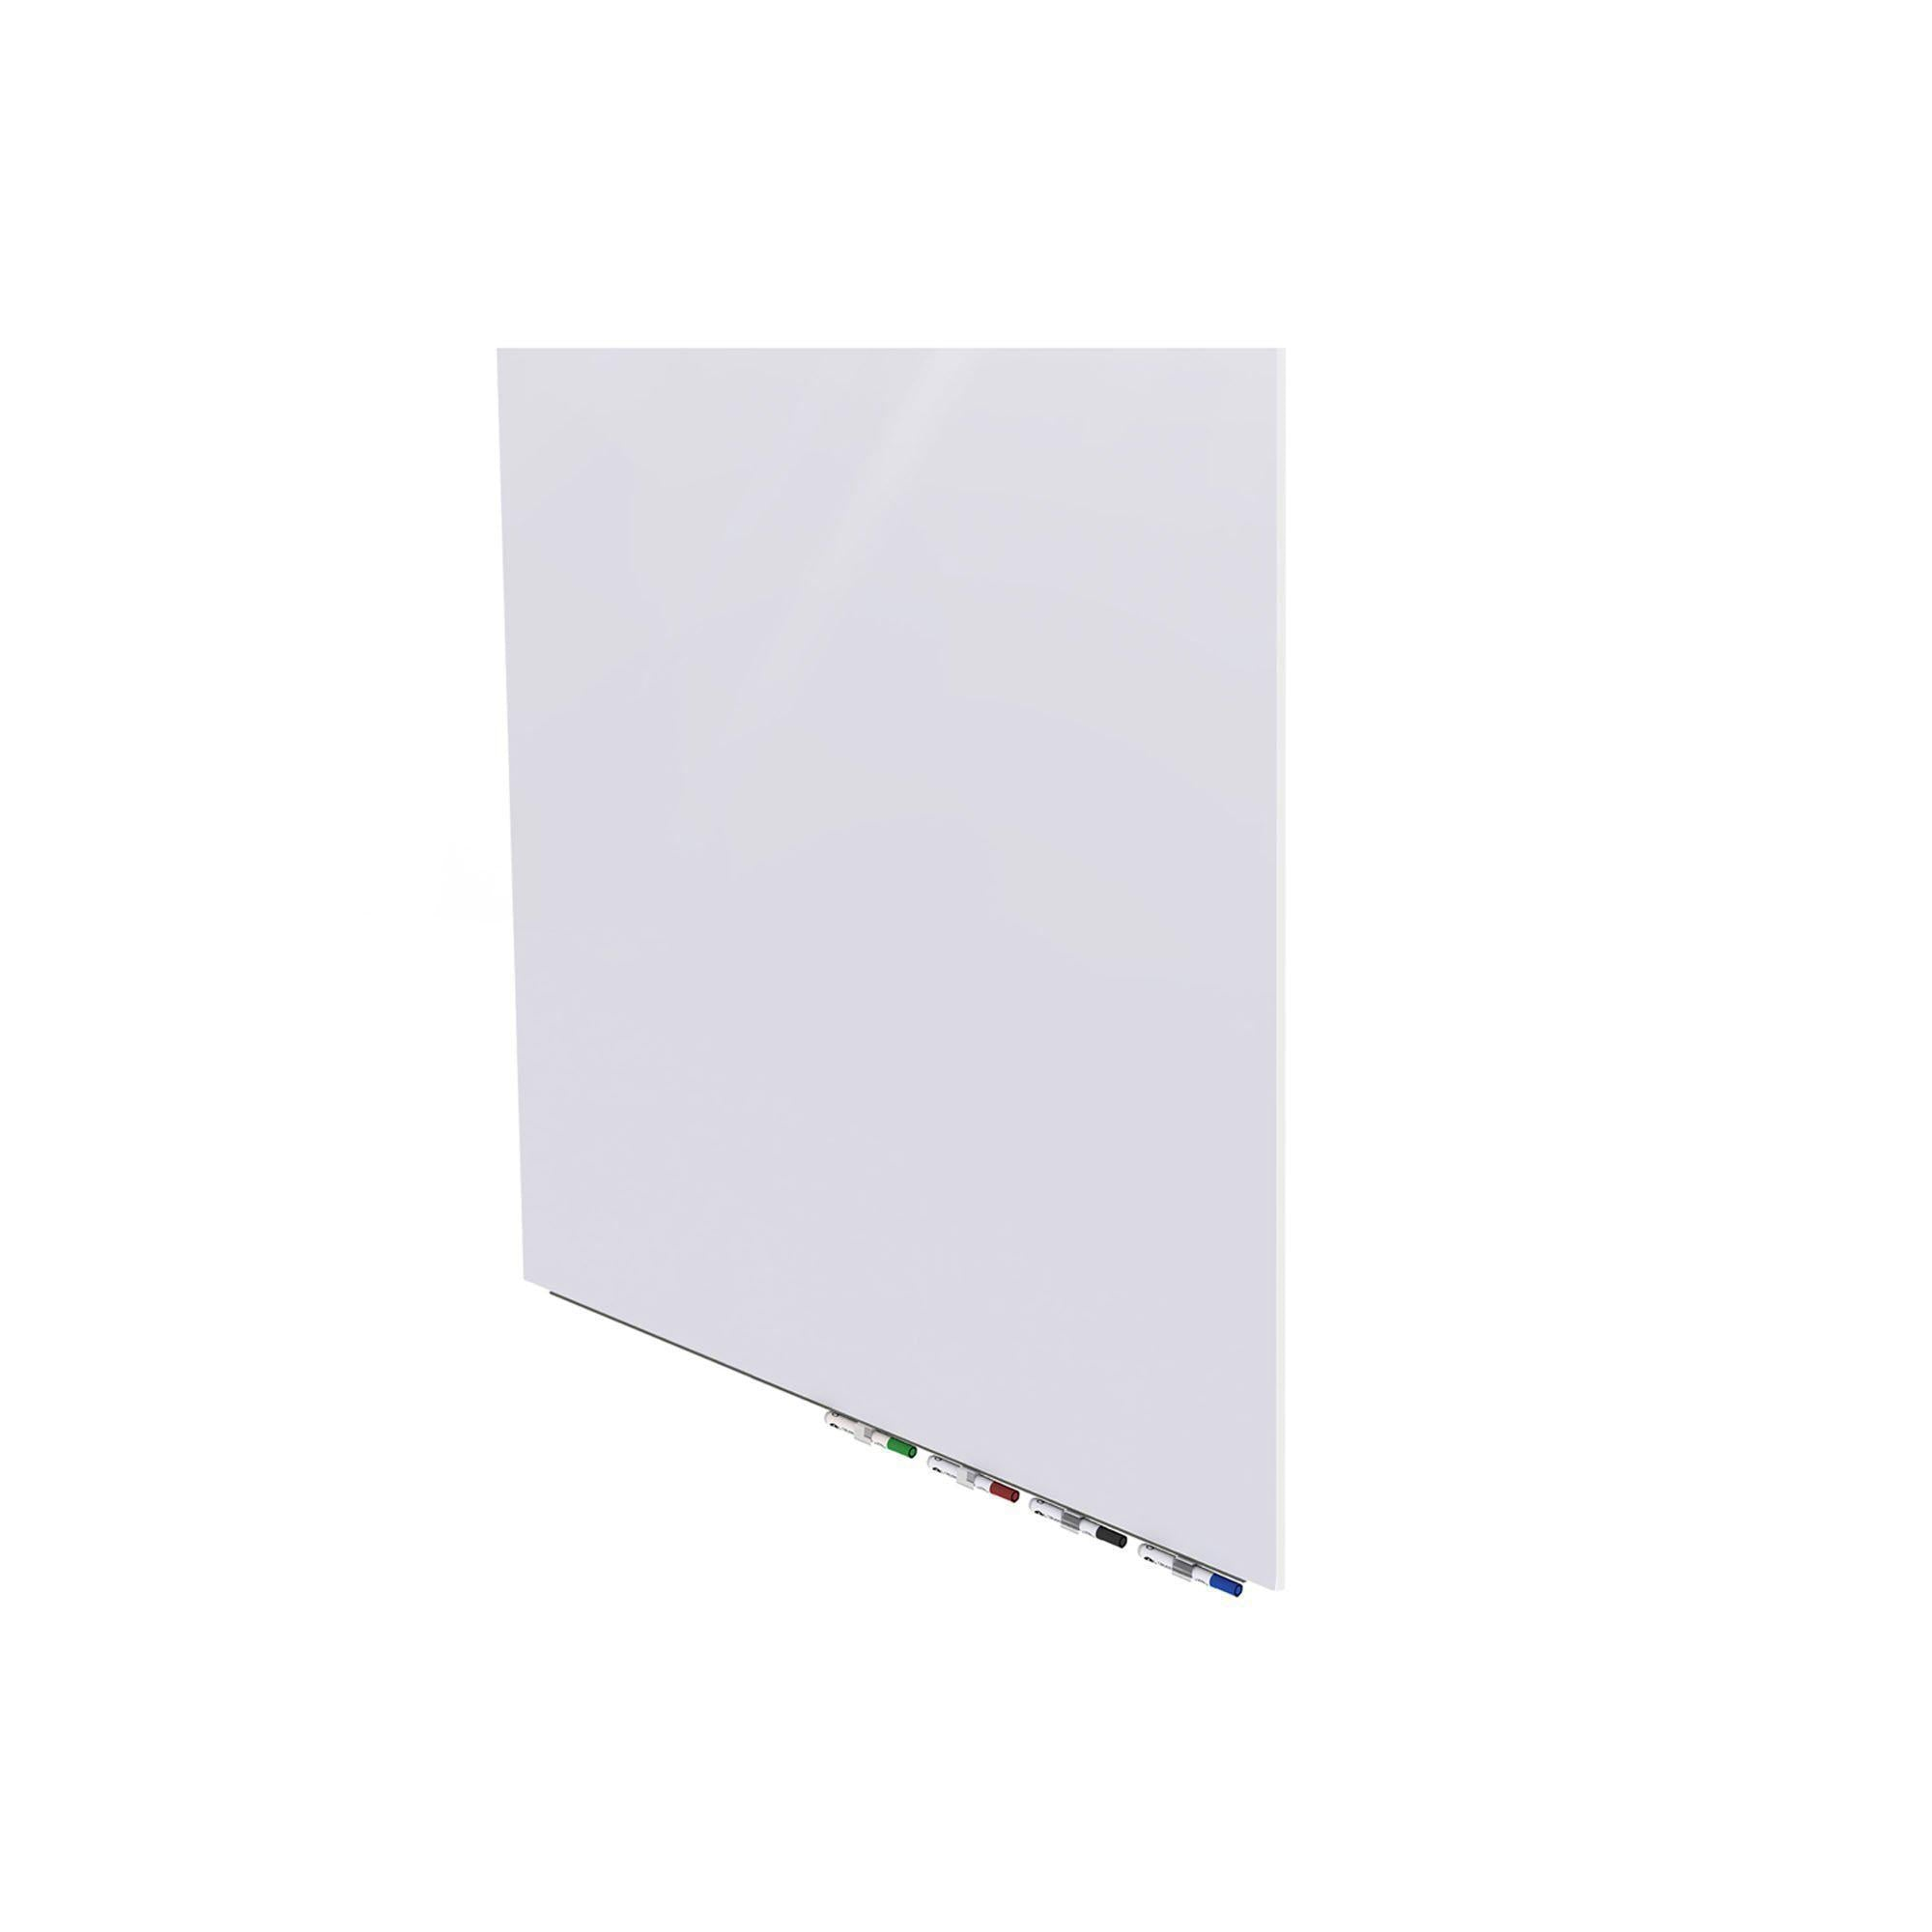 Aria Low Profile Glass Whiteboard-Boards-Magnetic-2'H x 3'W-